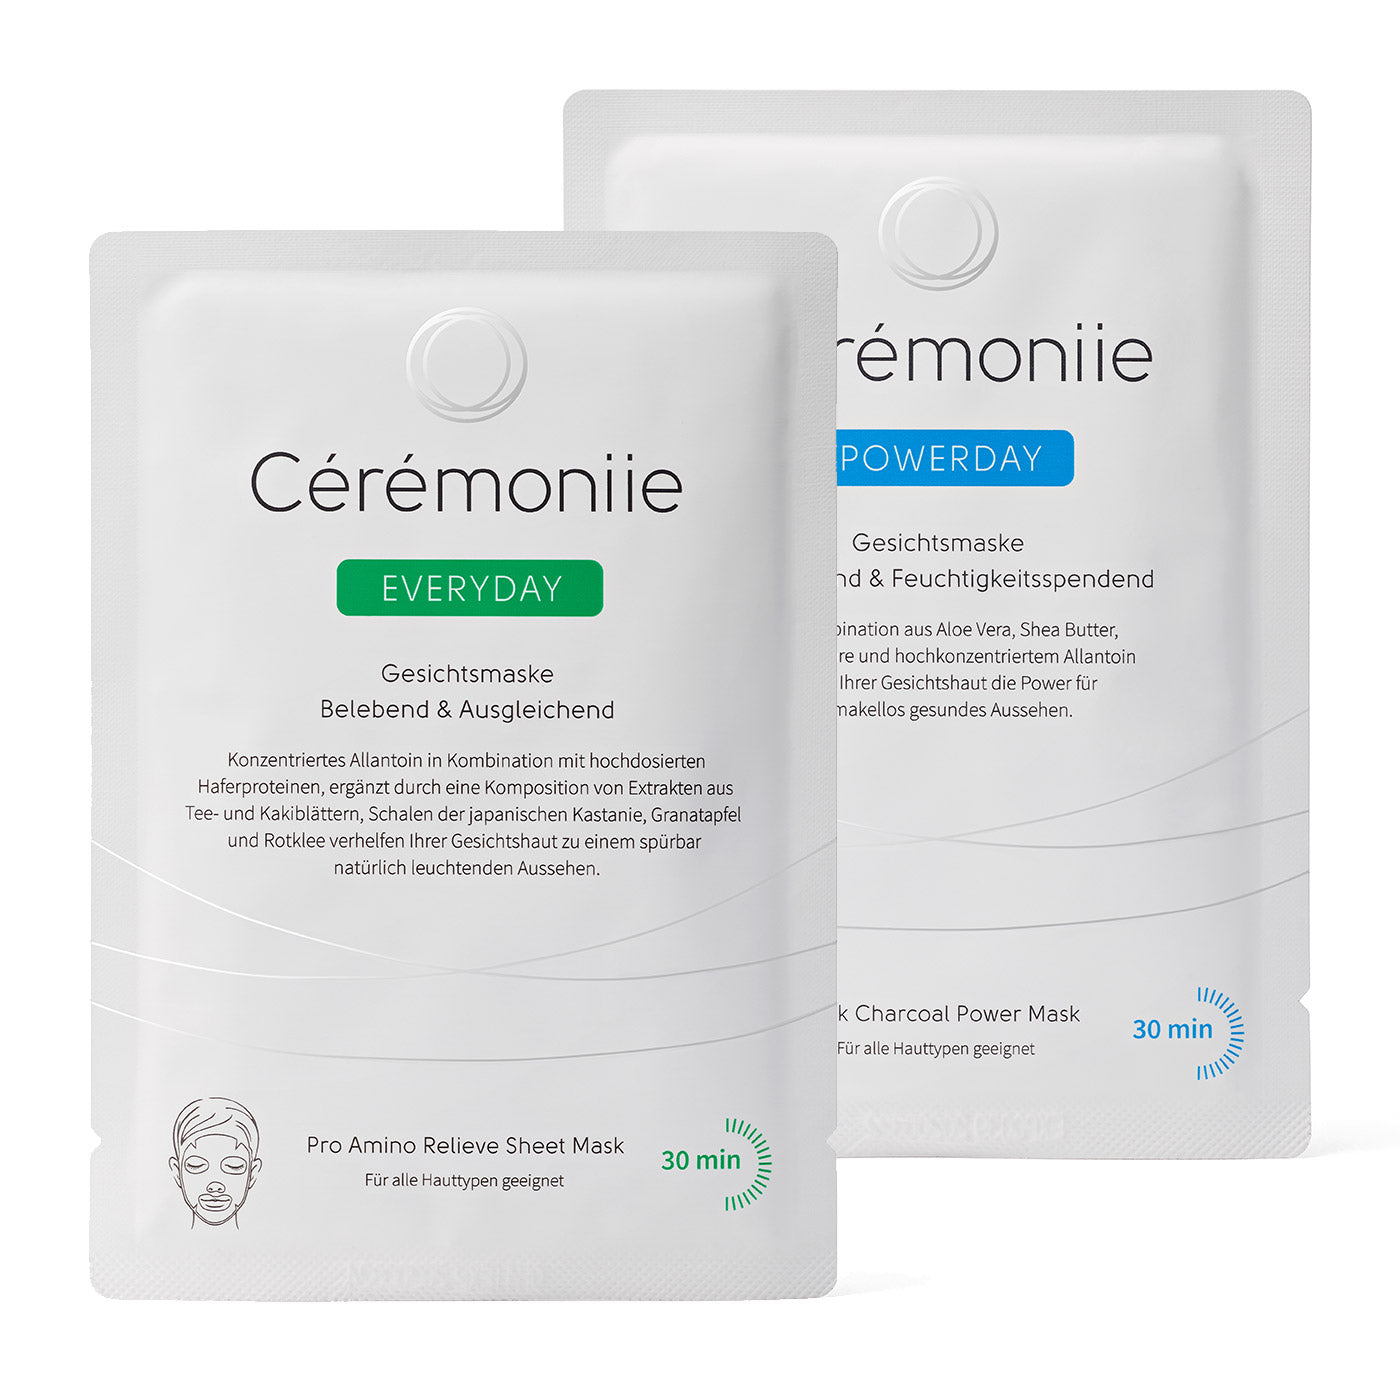 Cérémoniie Kennenlern-Set 1 x Everyday & 1 x Powerday für 12,95€ inkl. Versand